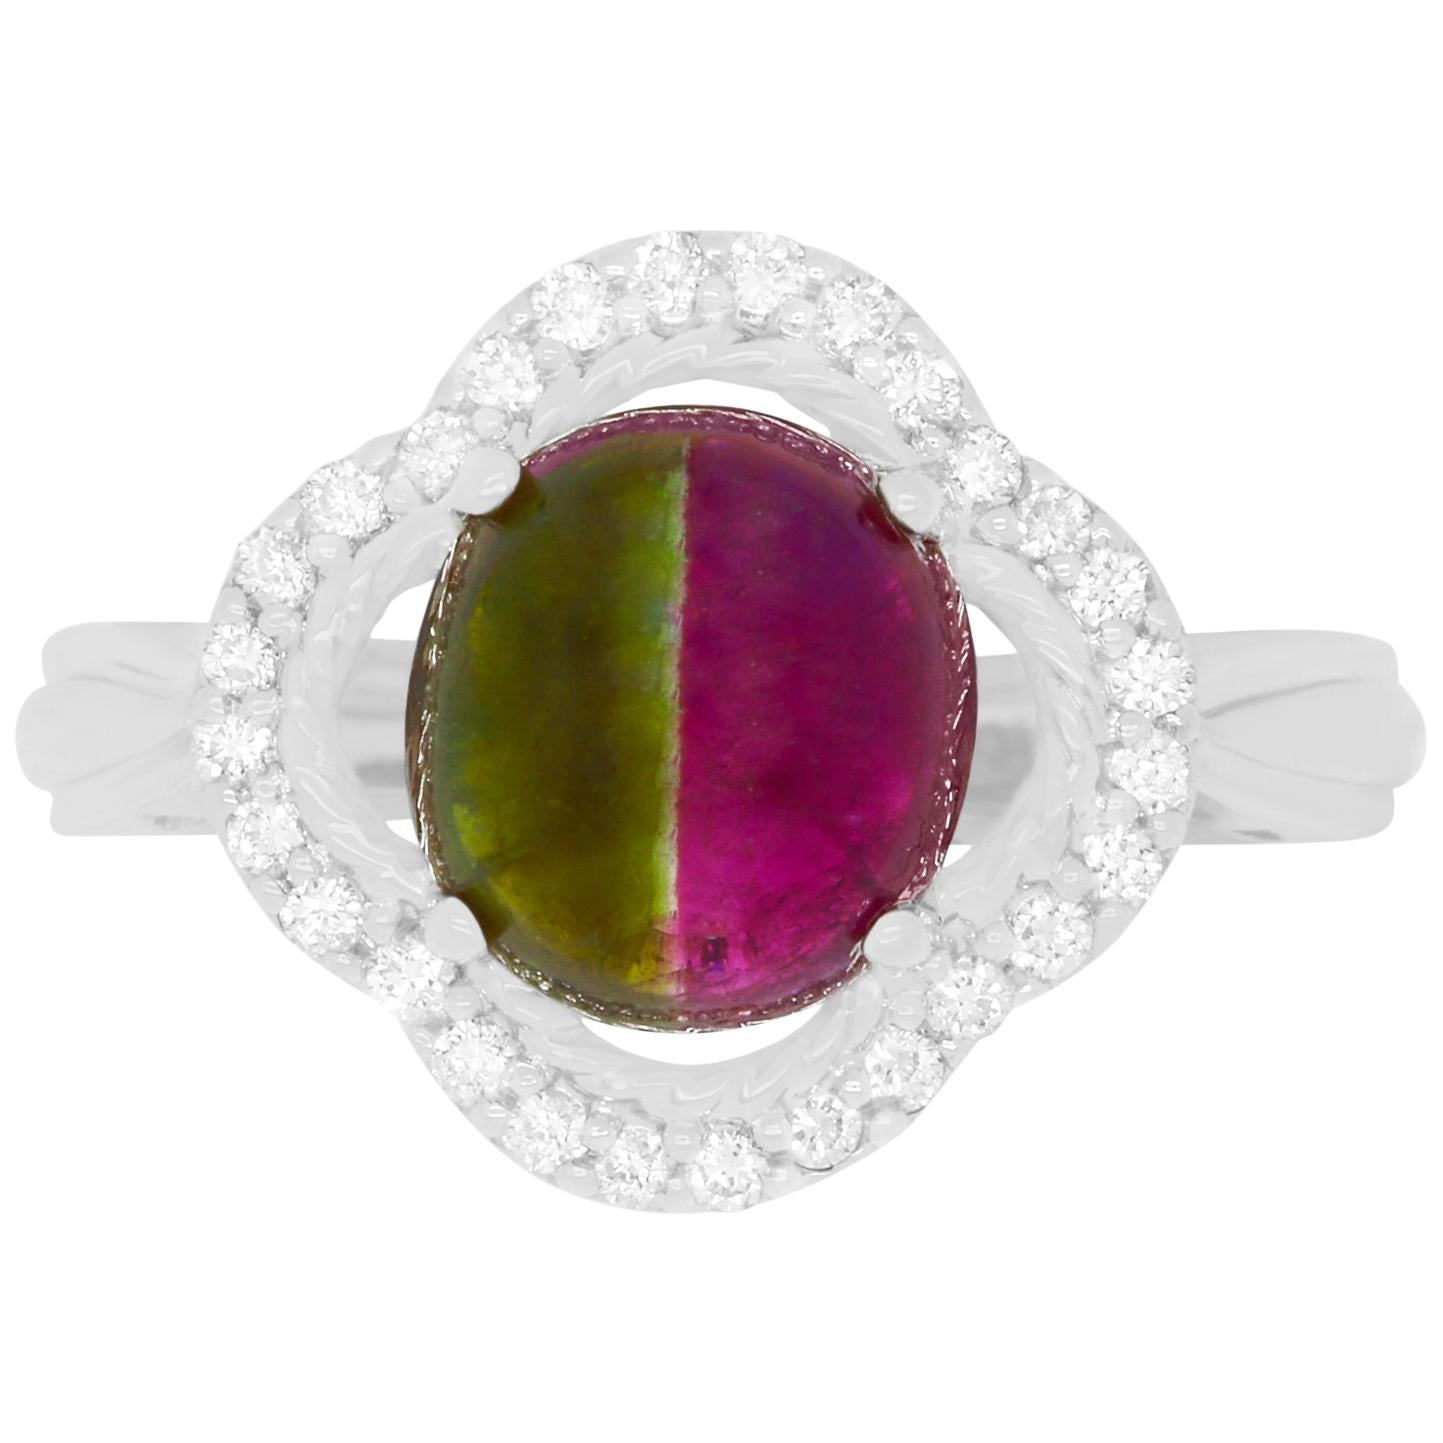 311 Carat Bicolor Watermelon Tourmaline and Diamond Ring For Sale at 1stdibs